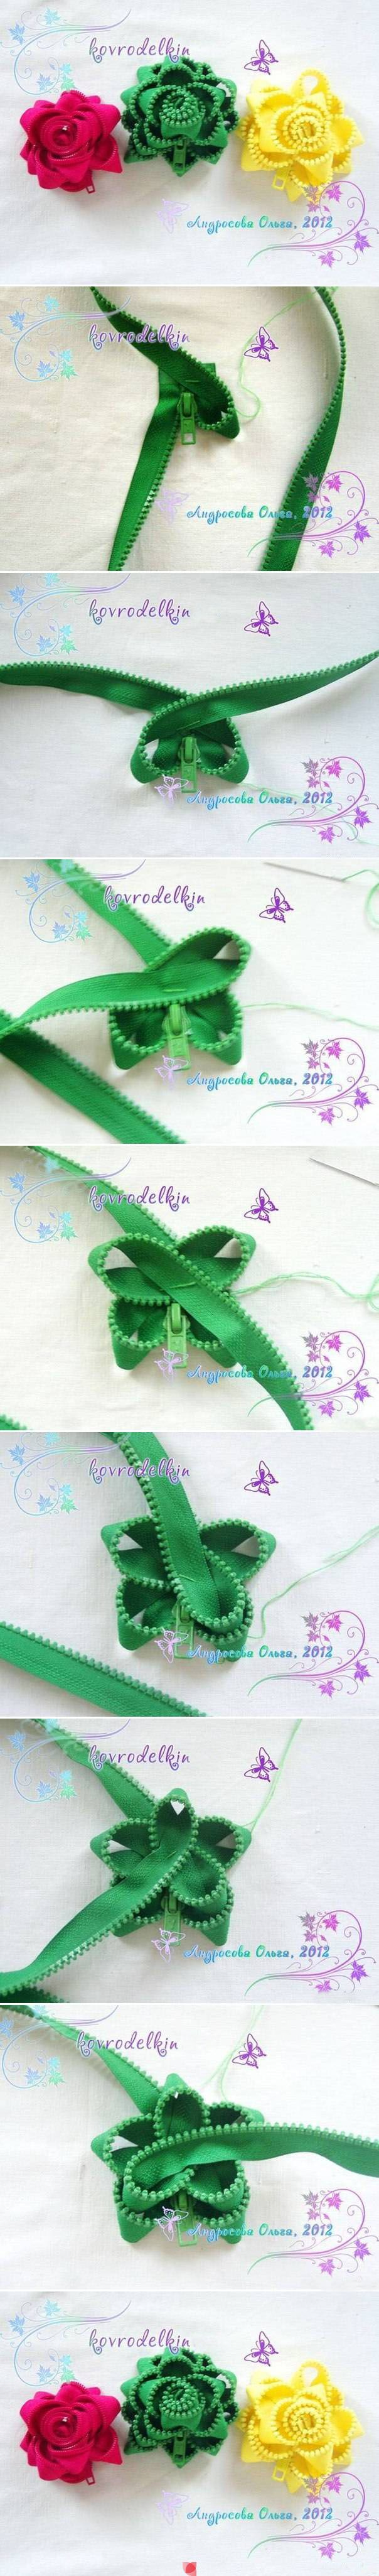 Flower made from an old zipper. DIY jewelry. sandylandya@outlook.es....reépinglé par Maurie Daboux.•*´♥*•❥ڿڰۣ—